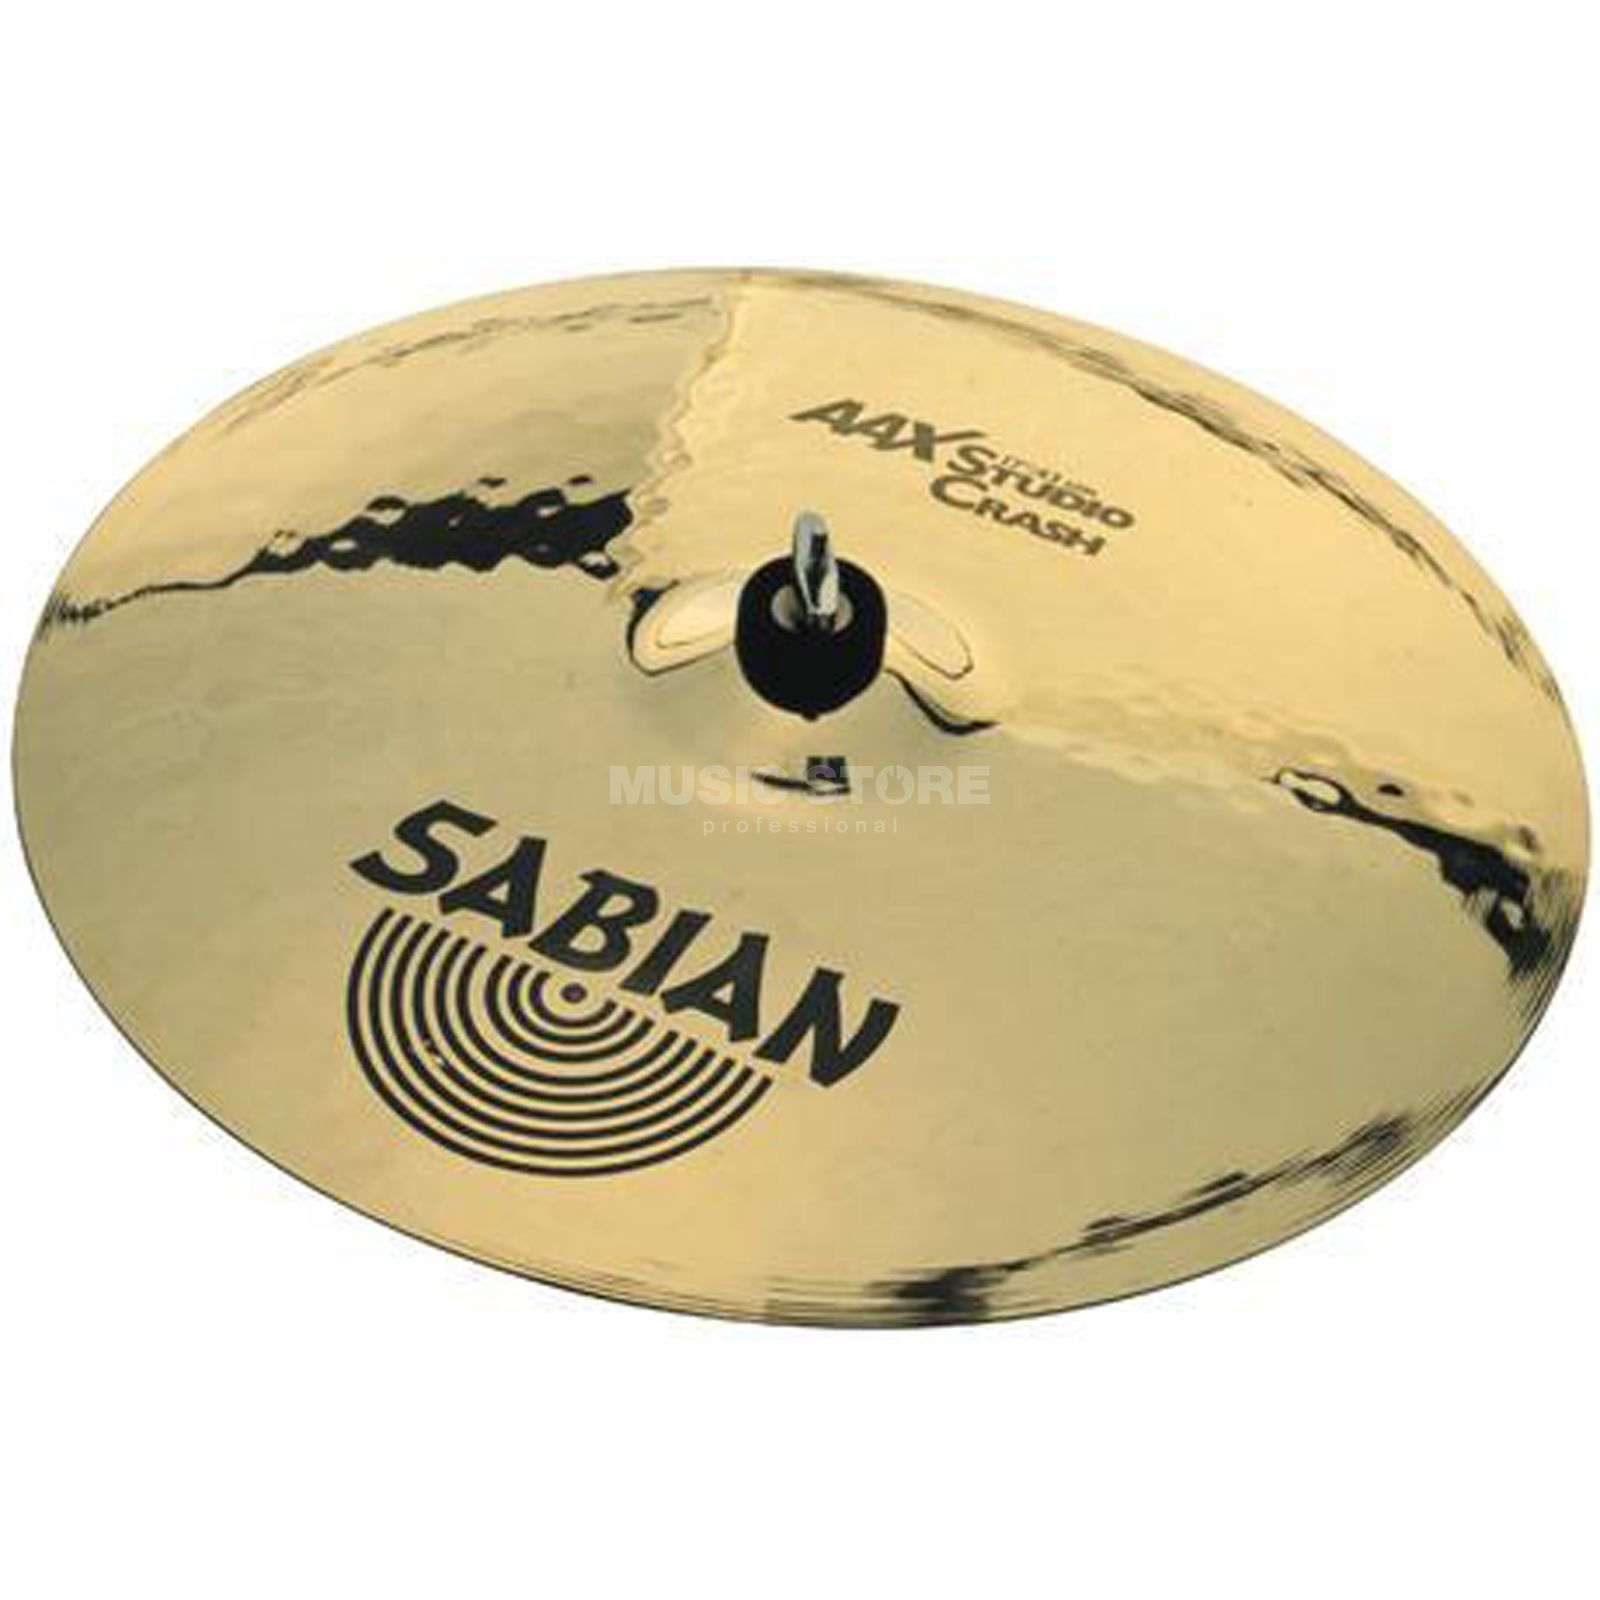 "Sabian AAX Studio Crash 14"" Brilliant Finish Produktbillede"